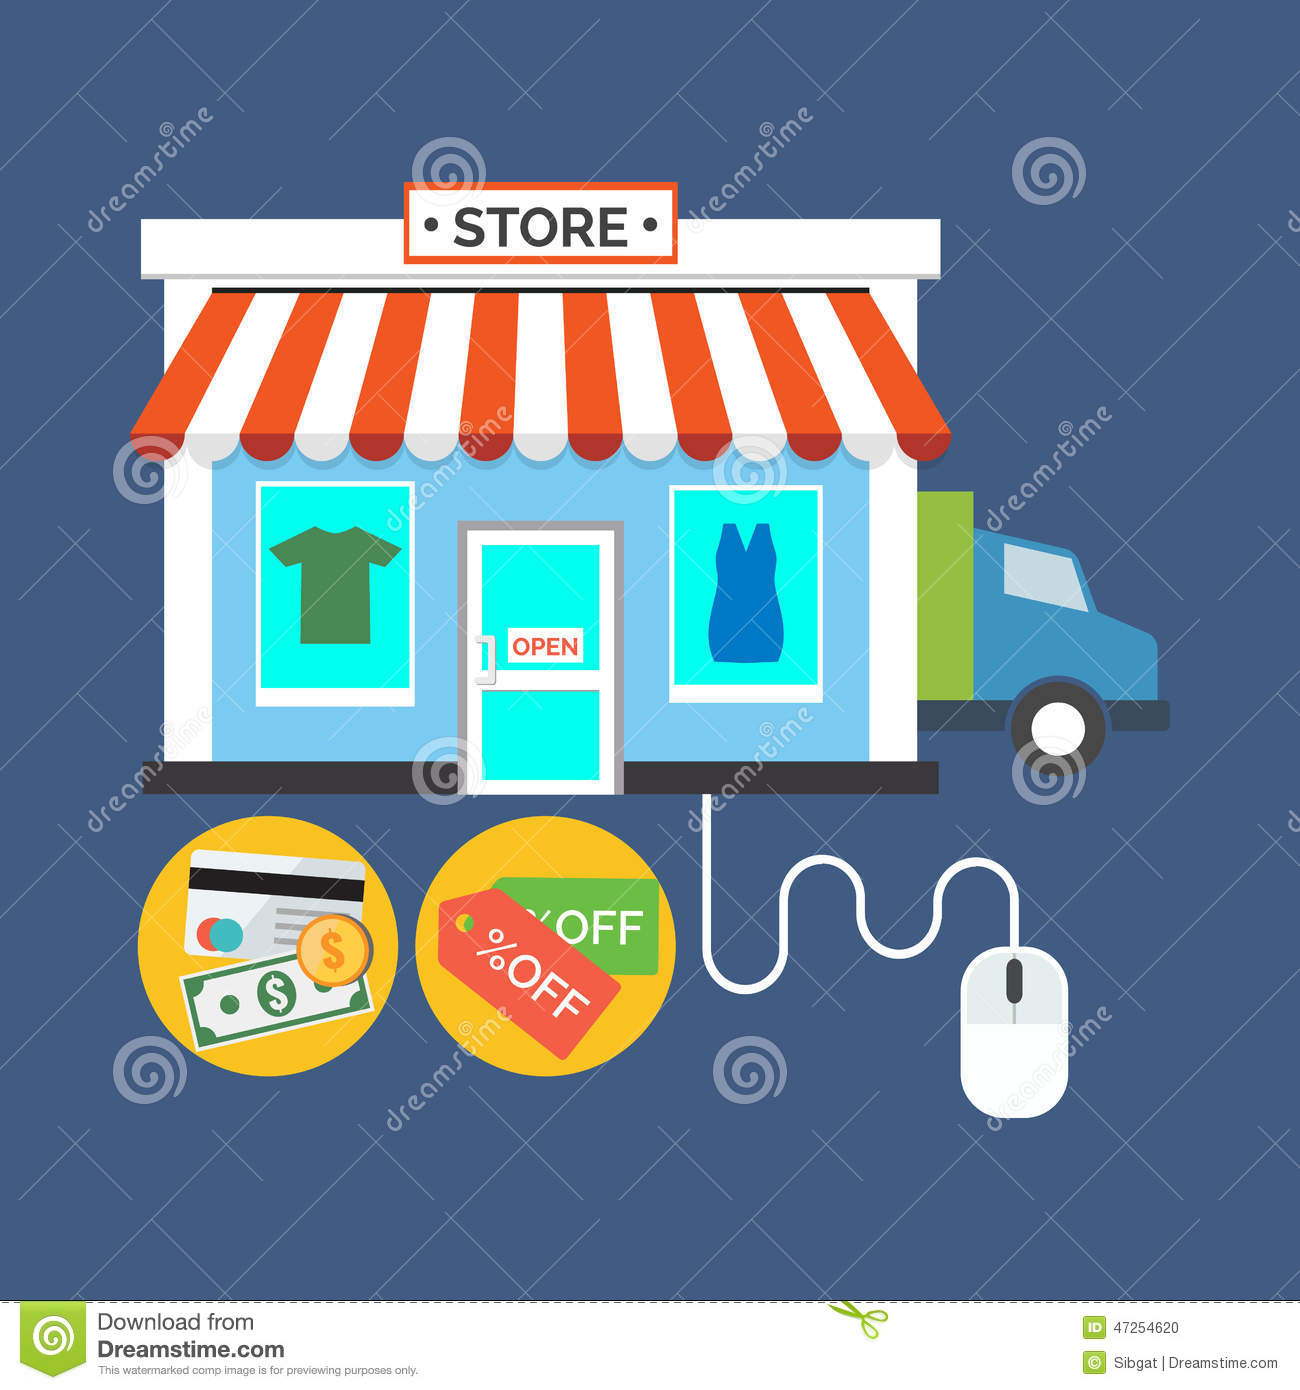 web-store-online-shop-concept-flat-design-stylish-isolated-color-background-47254620.jpg